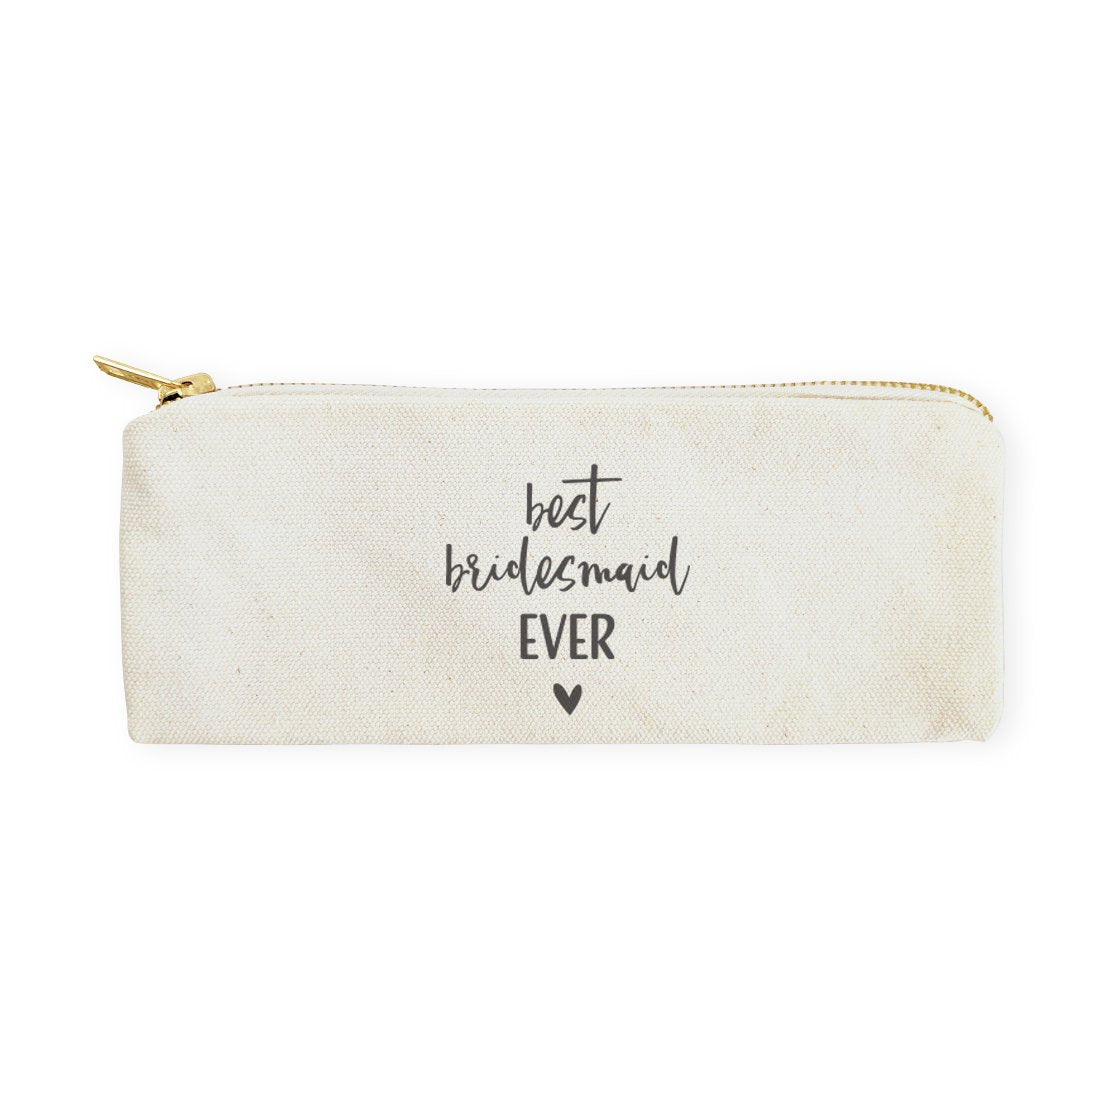 Best Bridesmaid Ever Cotton Canvas Pencil Case and Travel Pouch